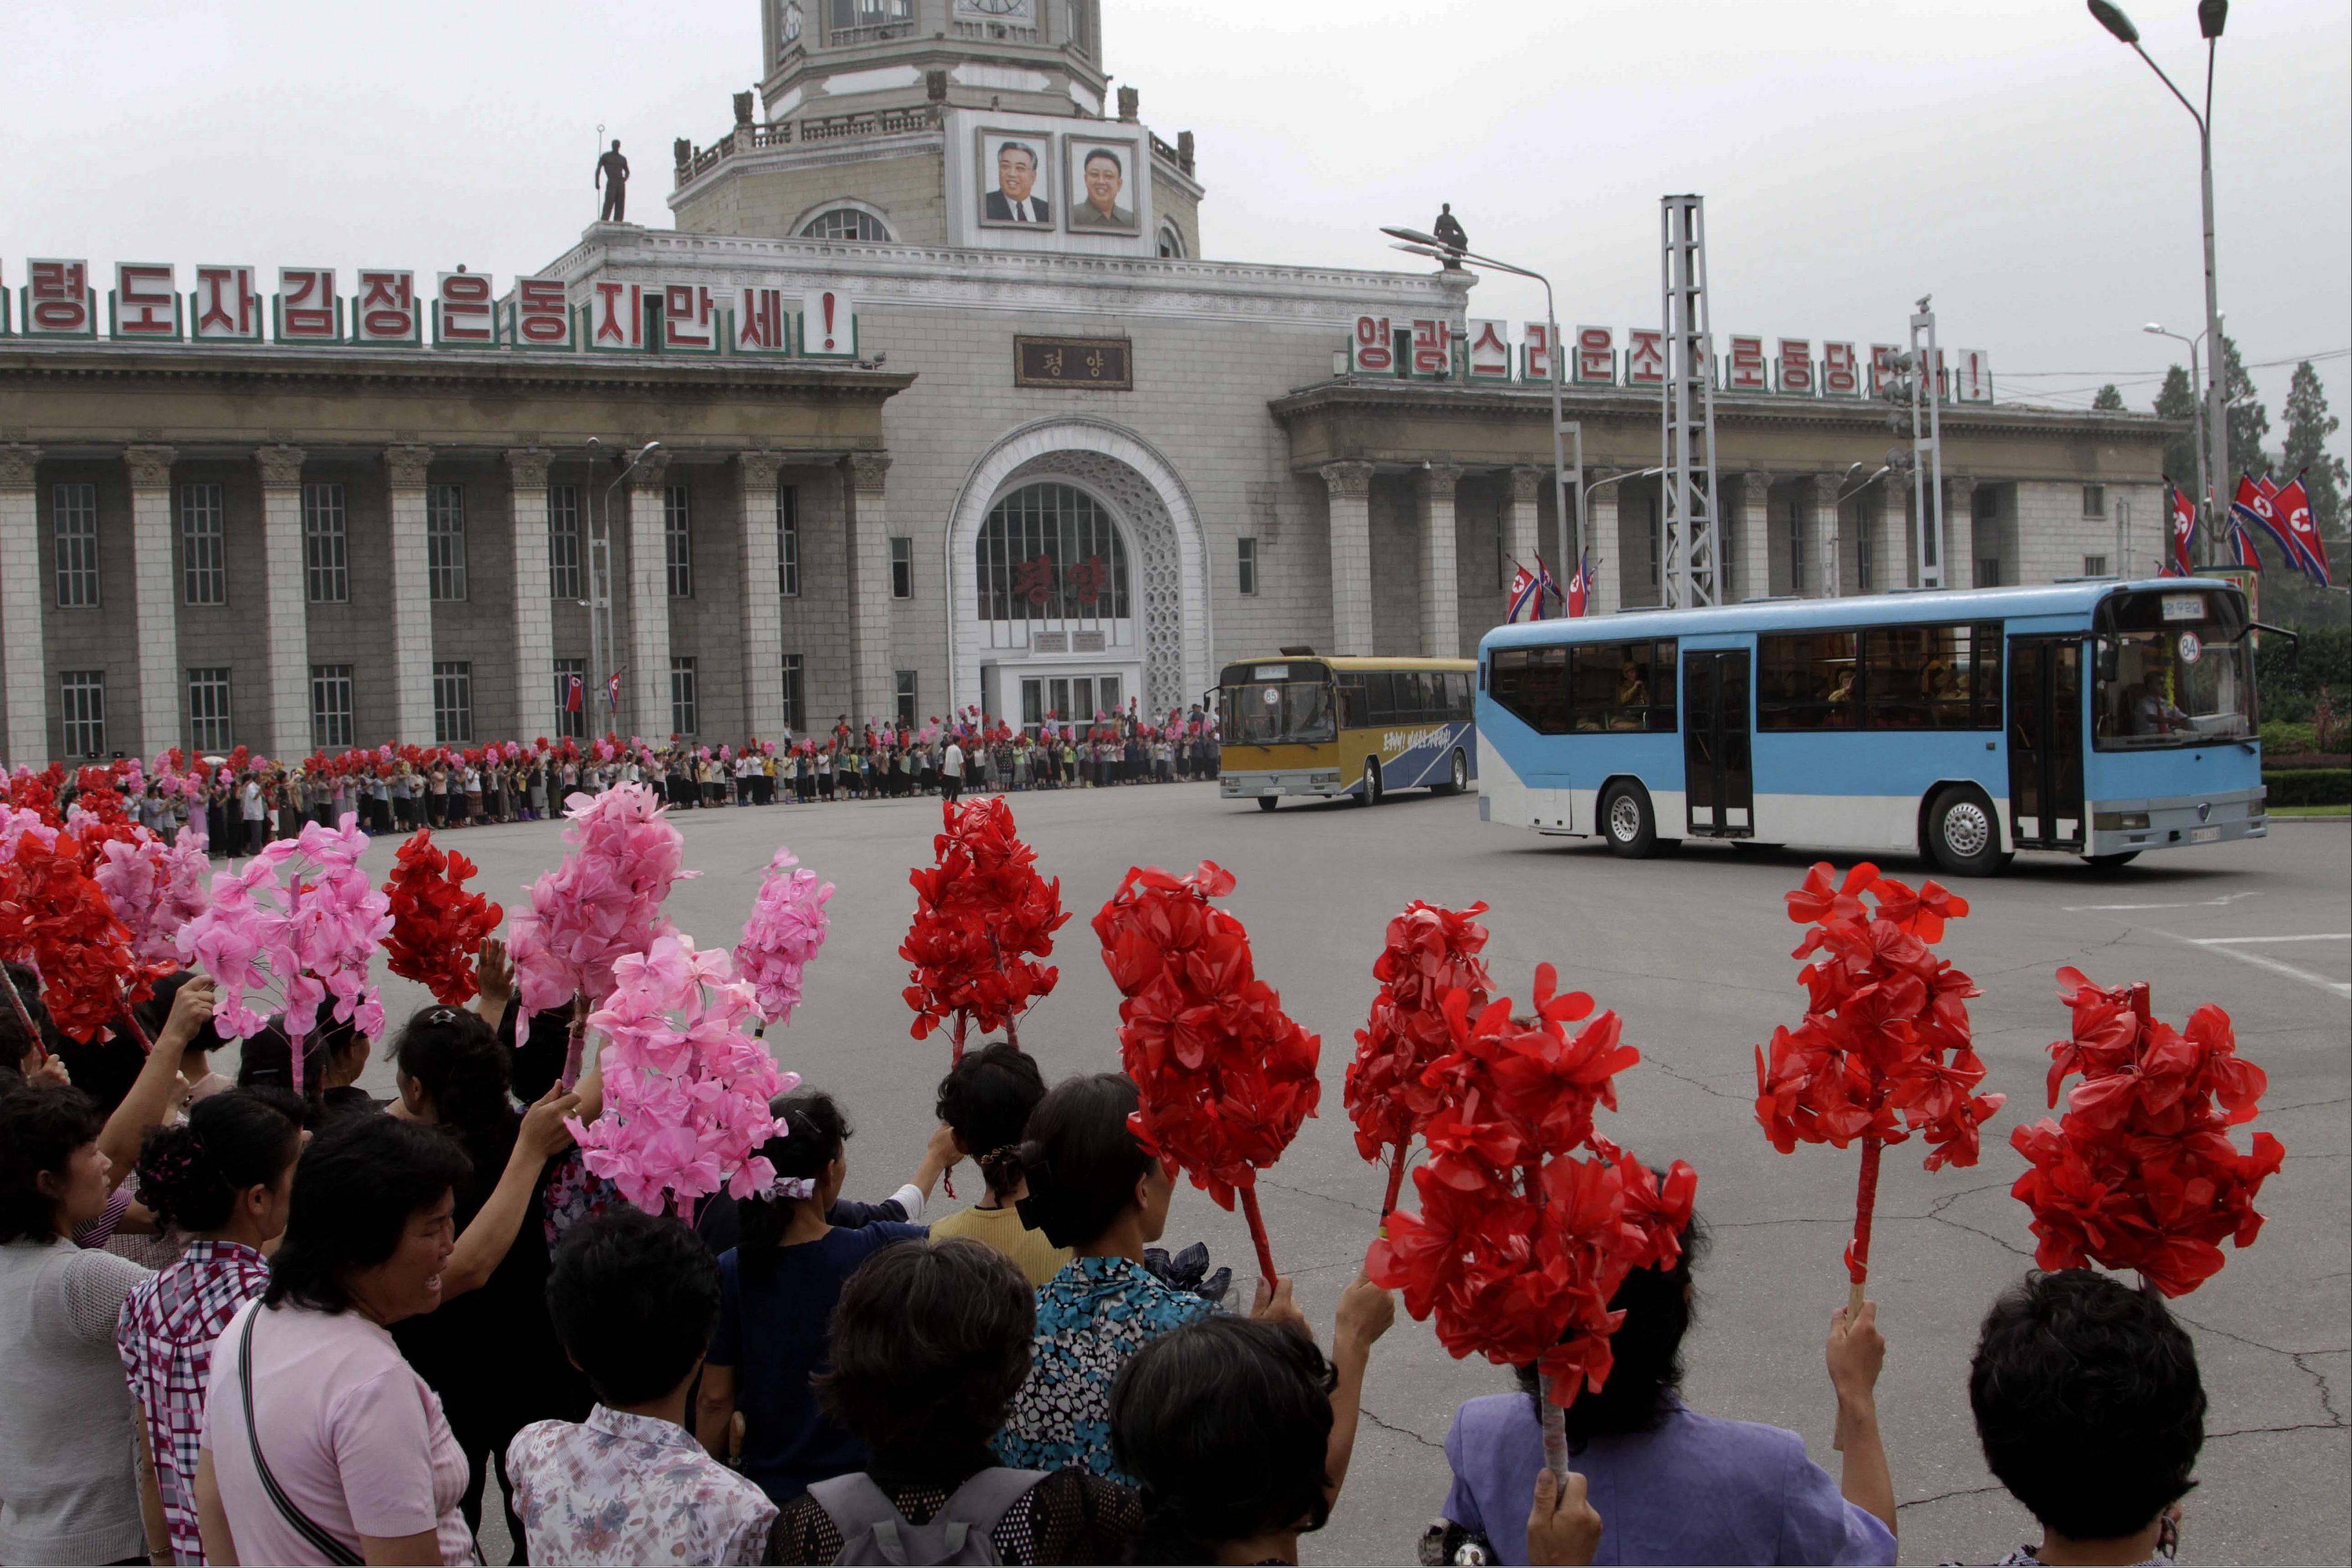 North Koreans welcome veterans of the Korean War as they pass by inside buses after arriving at the Pyongyang railway station Tuesday. Veterans arrived in Pyongyang as the country prepares to mark the 60th anniversary of the end of the Korean War on July 27.